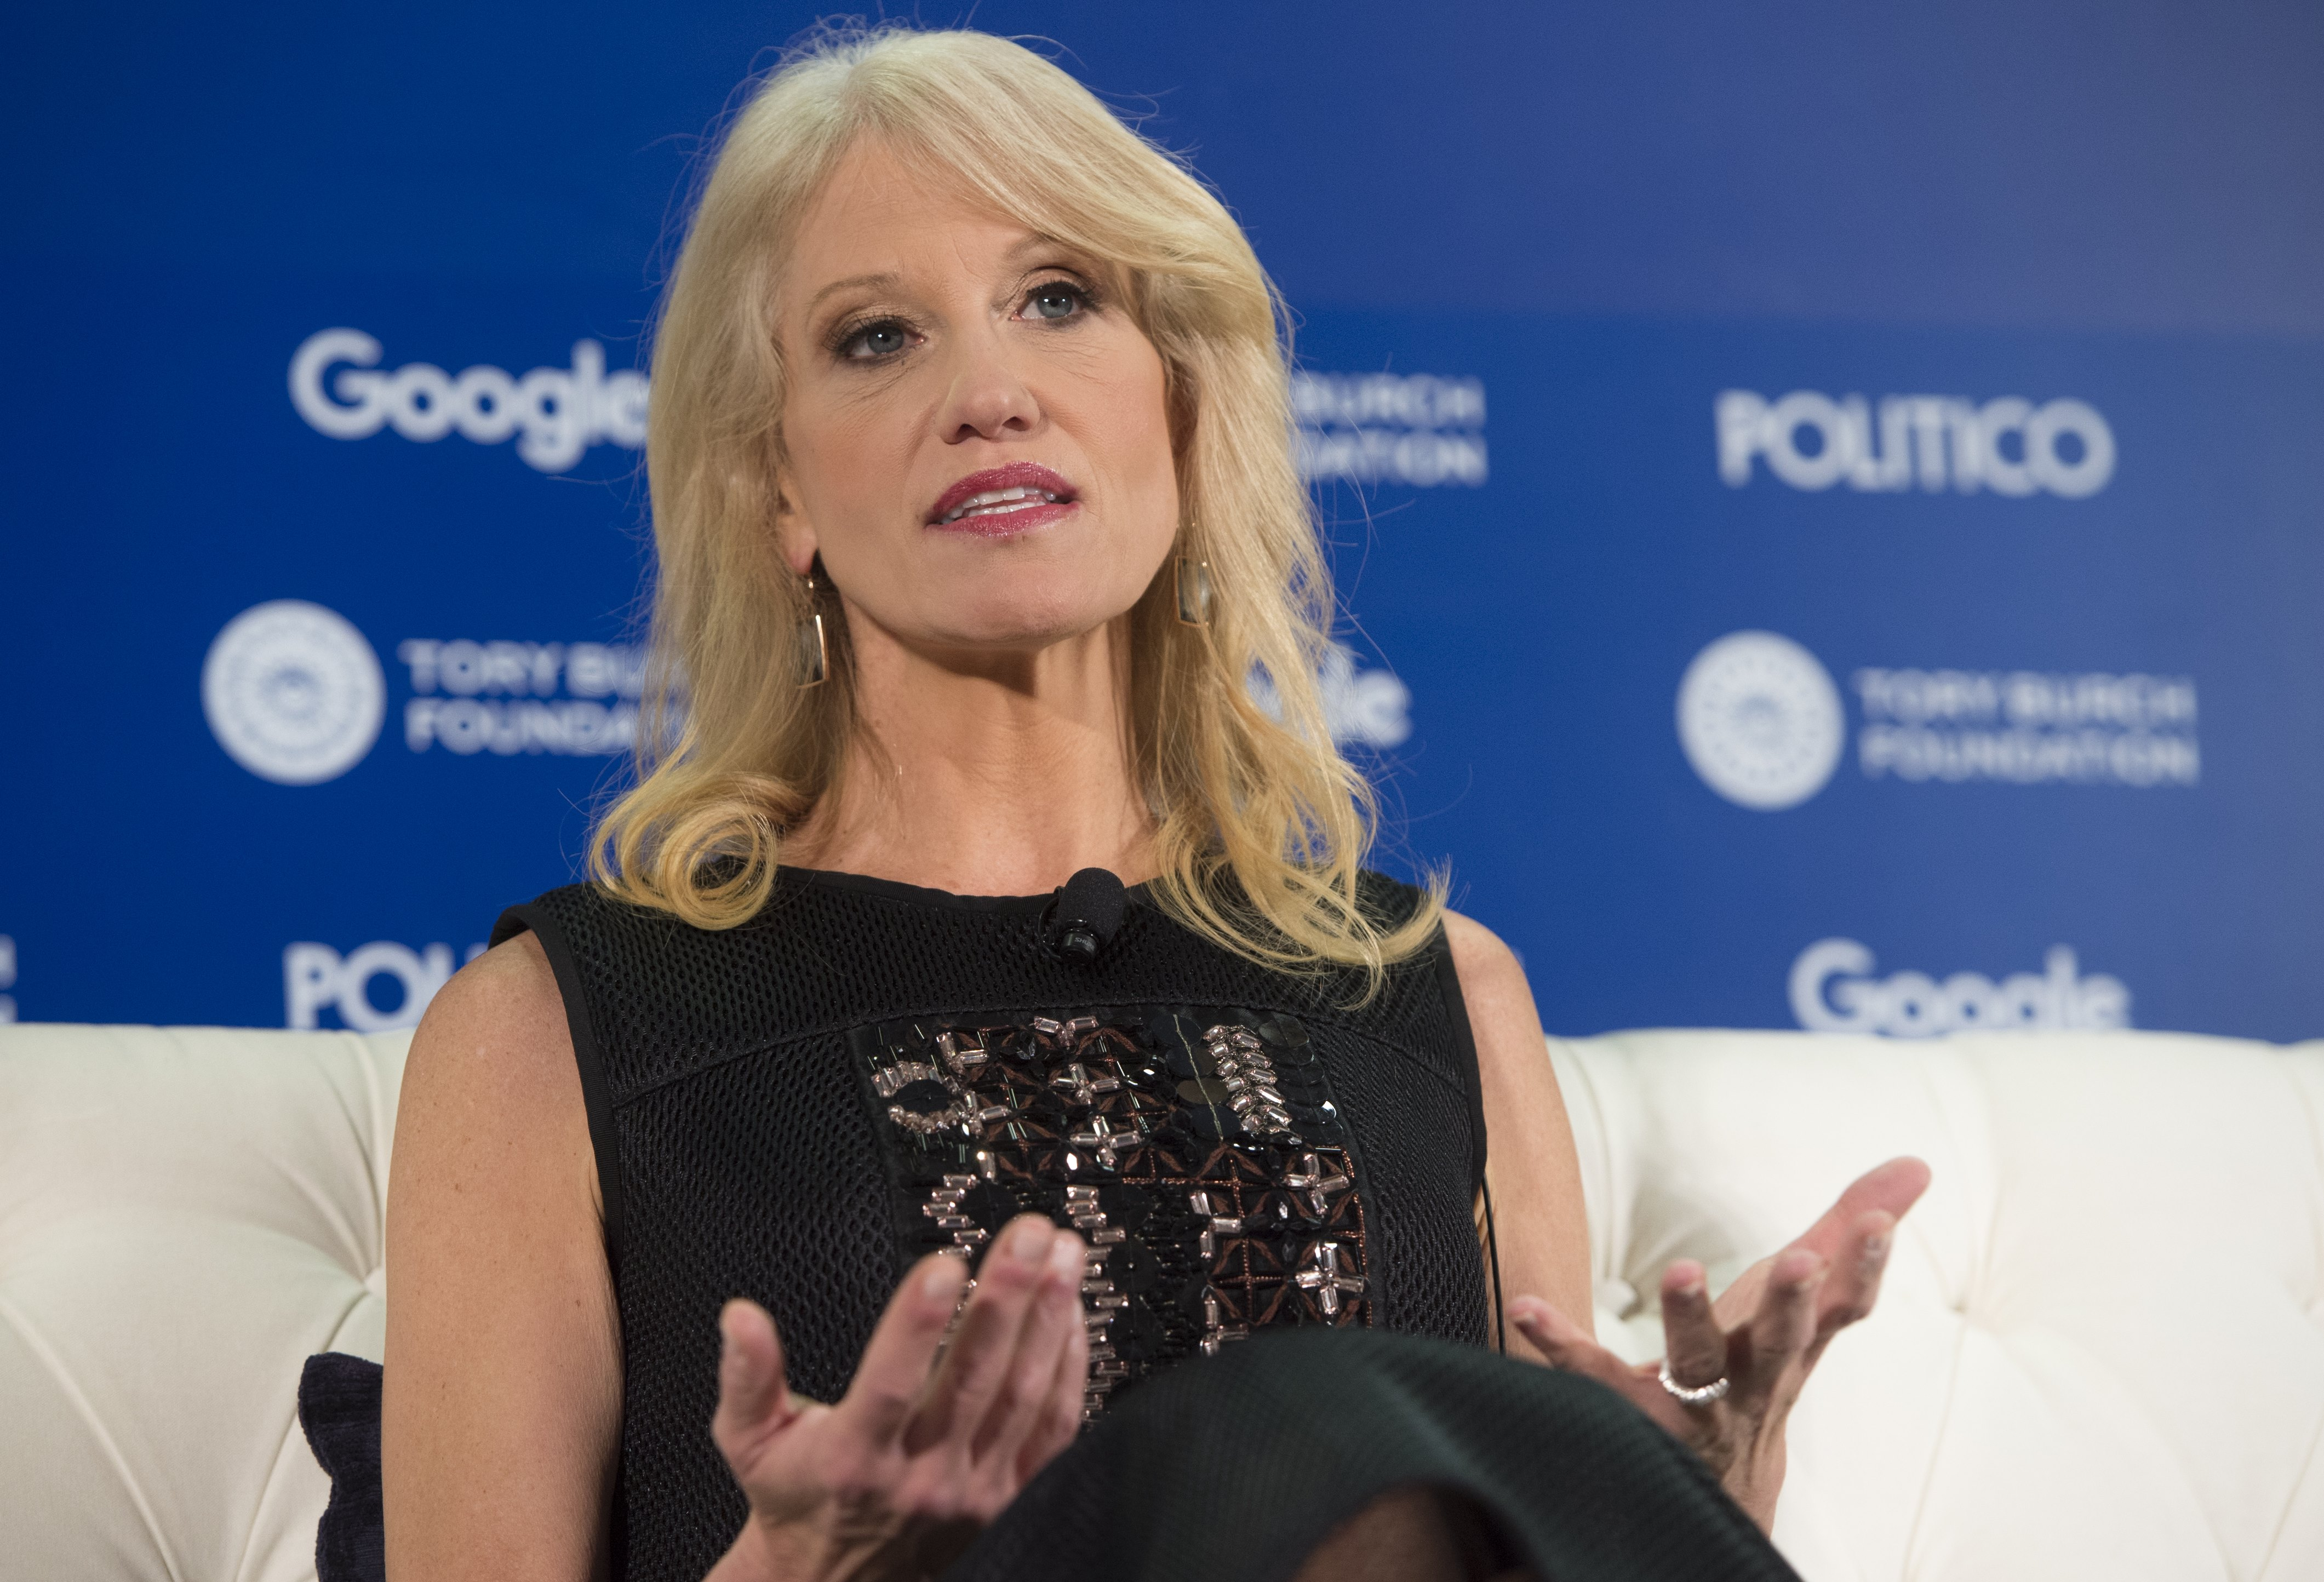 Kellyanne Conway, president and CEO of the Polling Company and the campaign manager of US President-elect Donald Trump's campaign, speaks during the 4th Annual Women Rule Summit in Washington, DC, December 7, 2016. (Photo credit: SAUL LOEB/AFP/Getty Images)